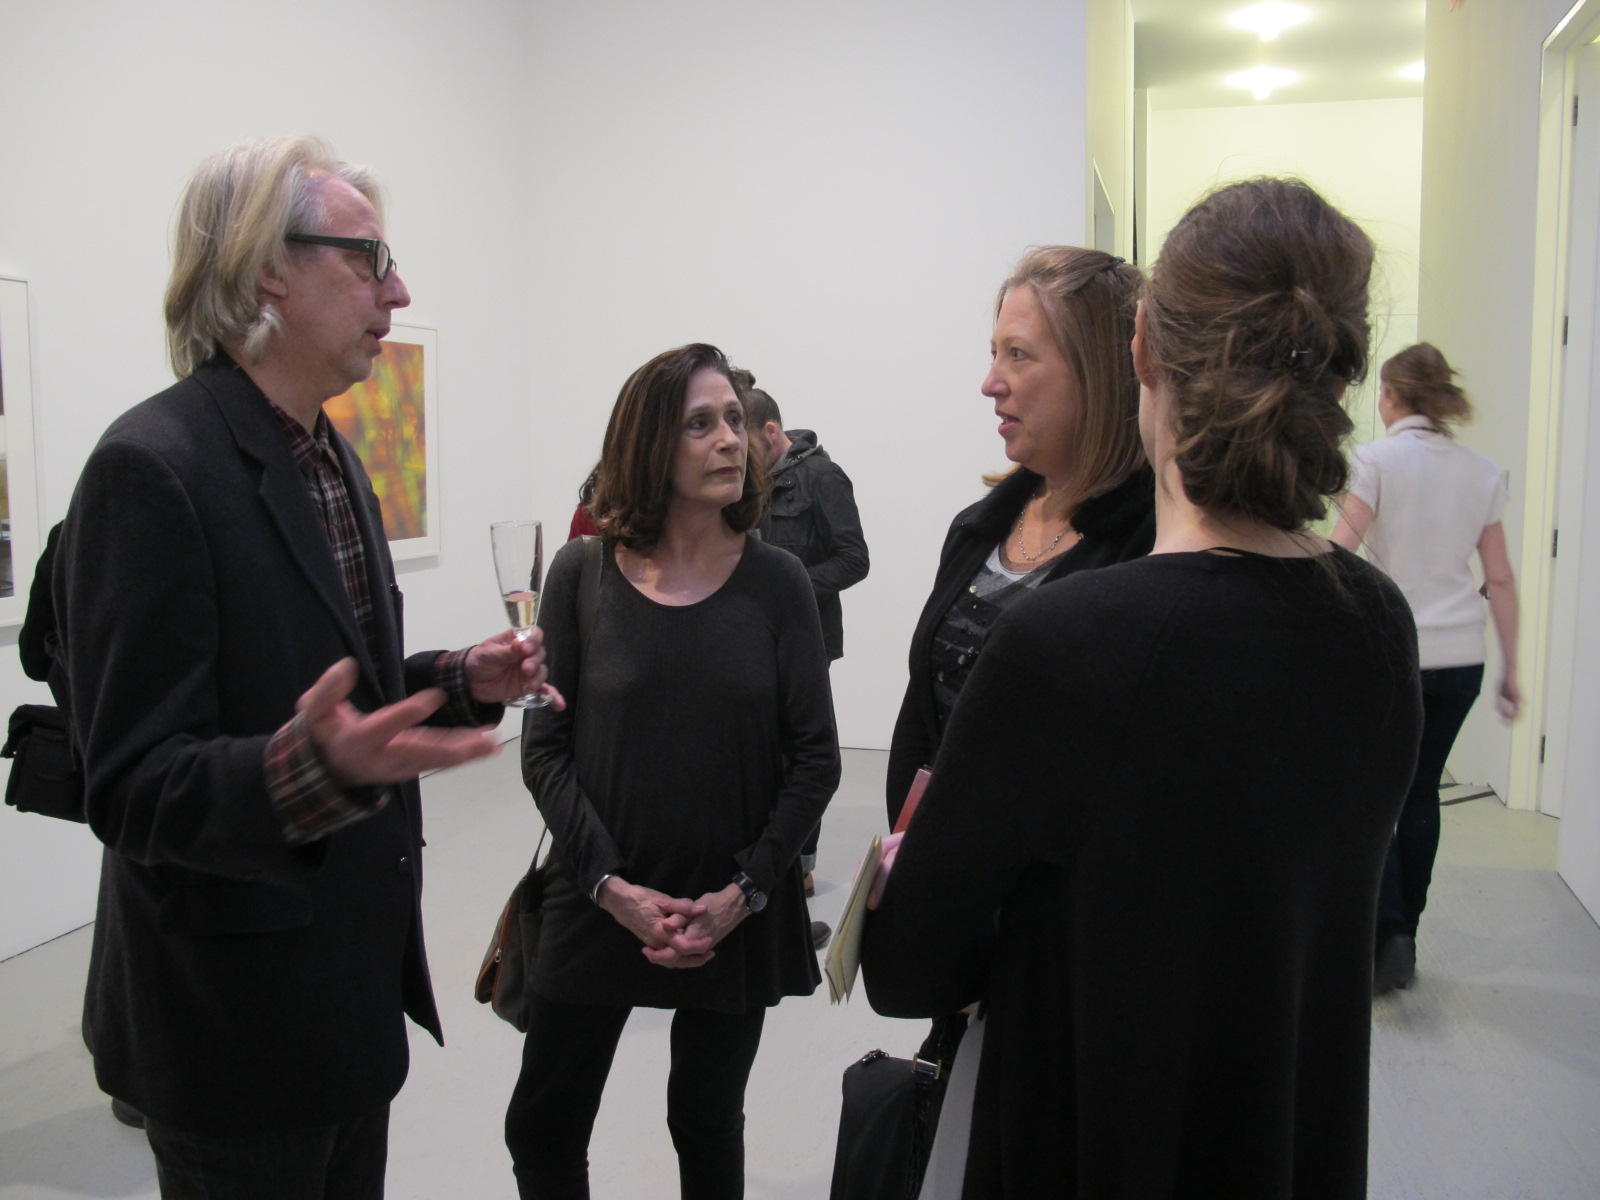 James Welling with Editor Alice Rose George and guests. James Welling at David Zwirner Gallery